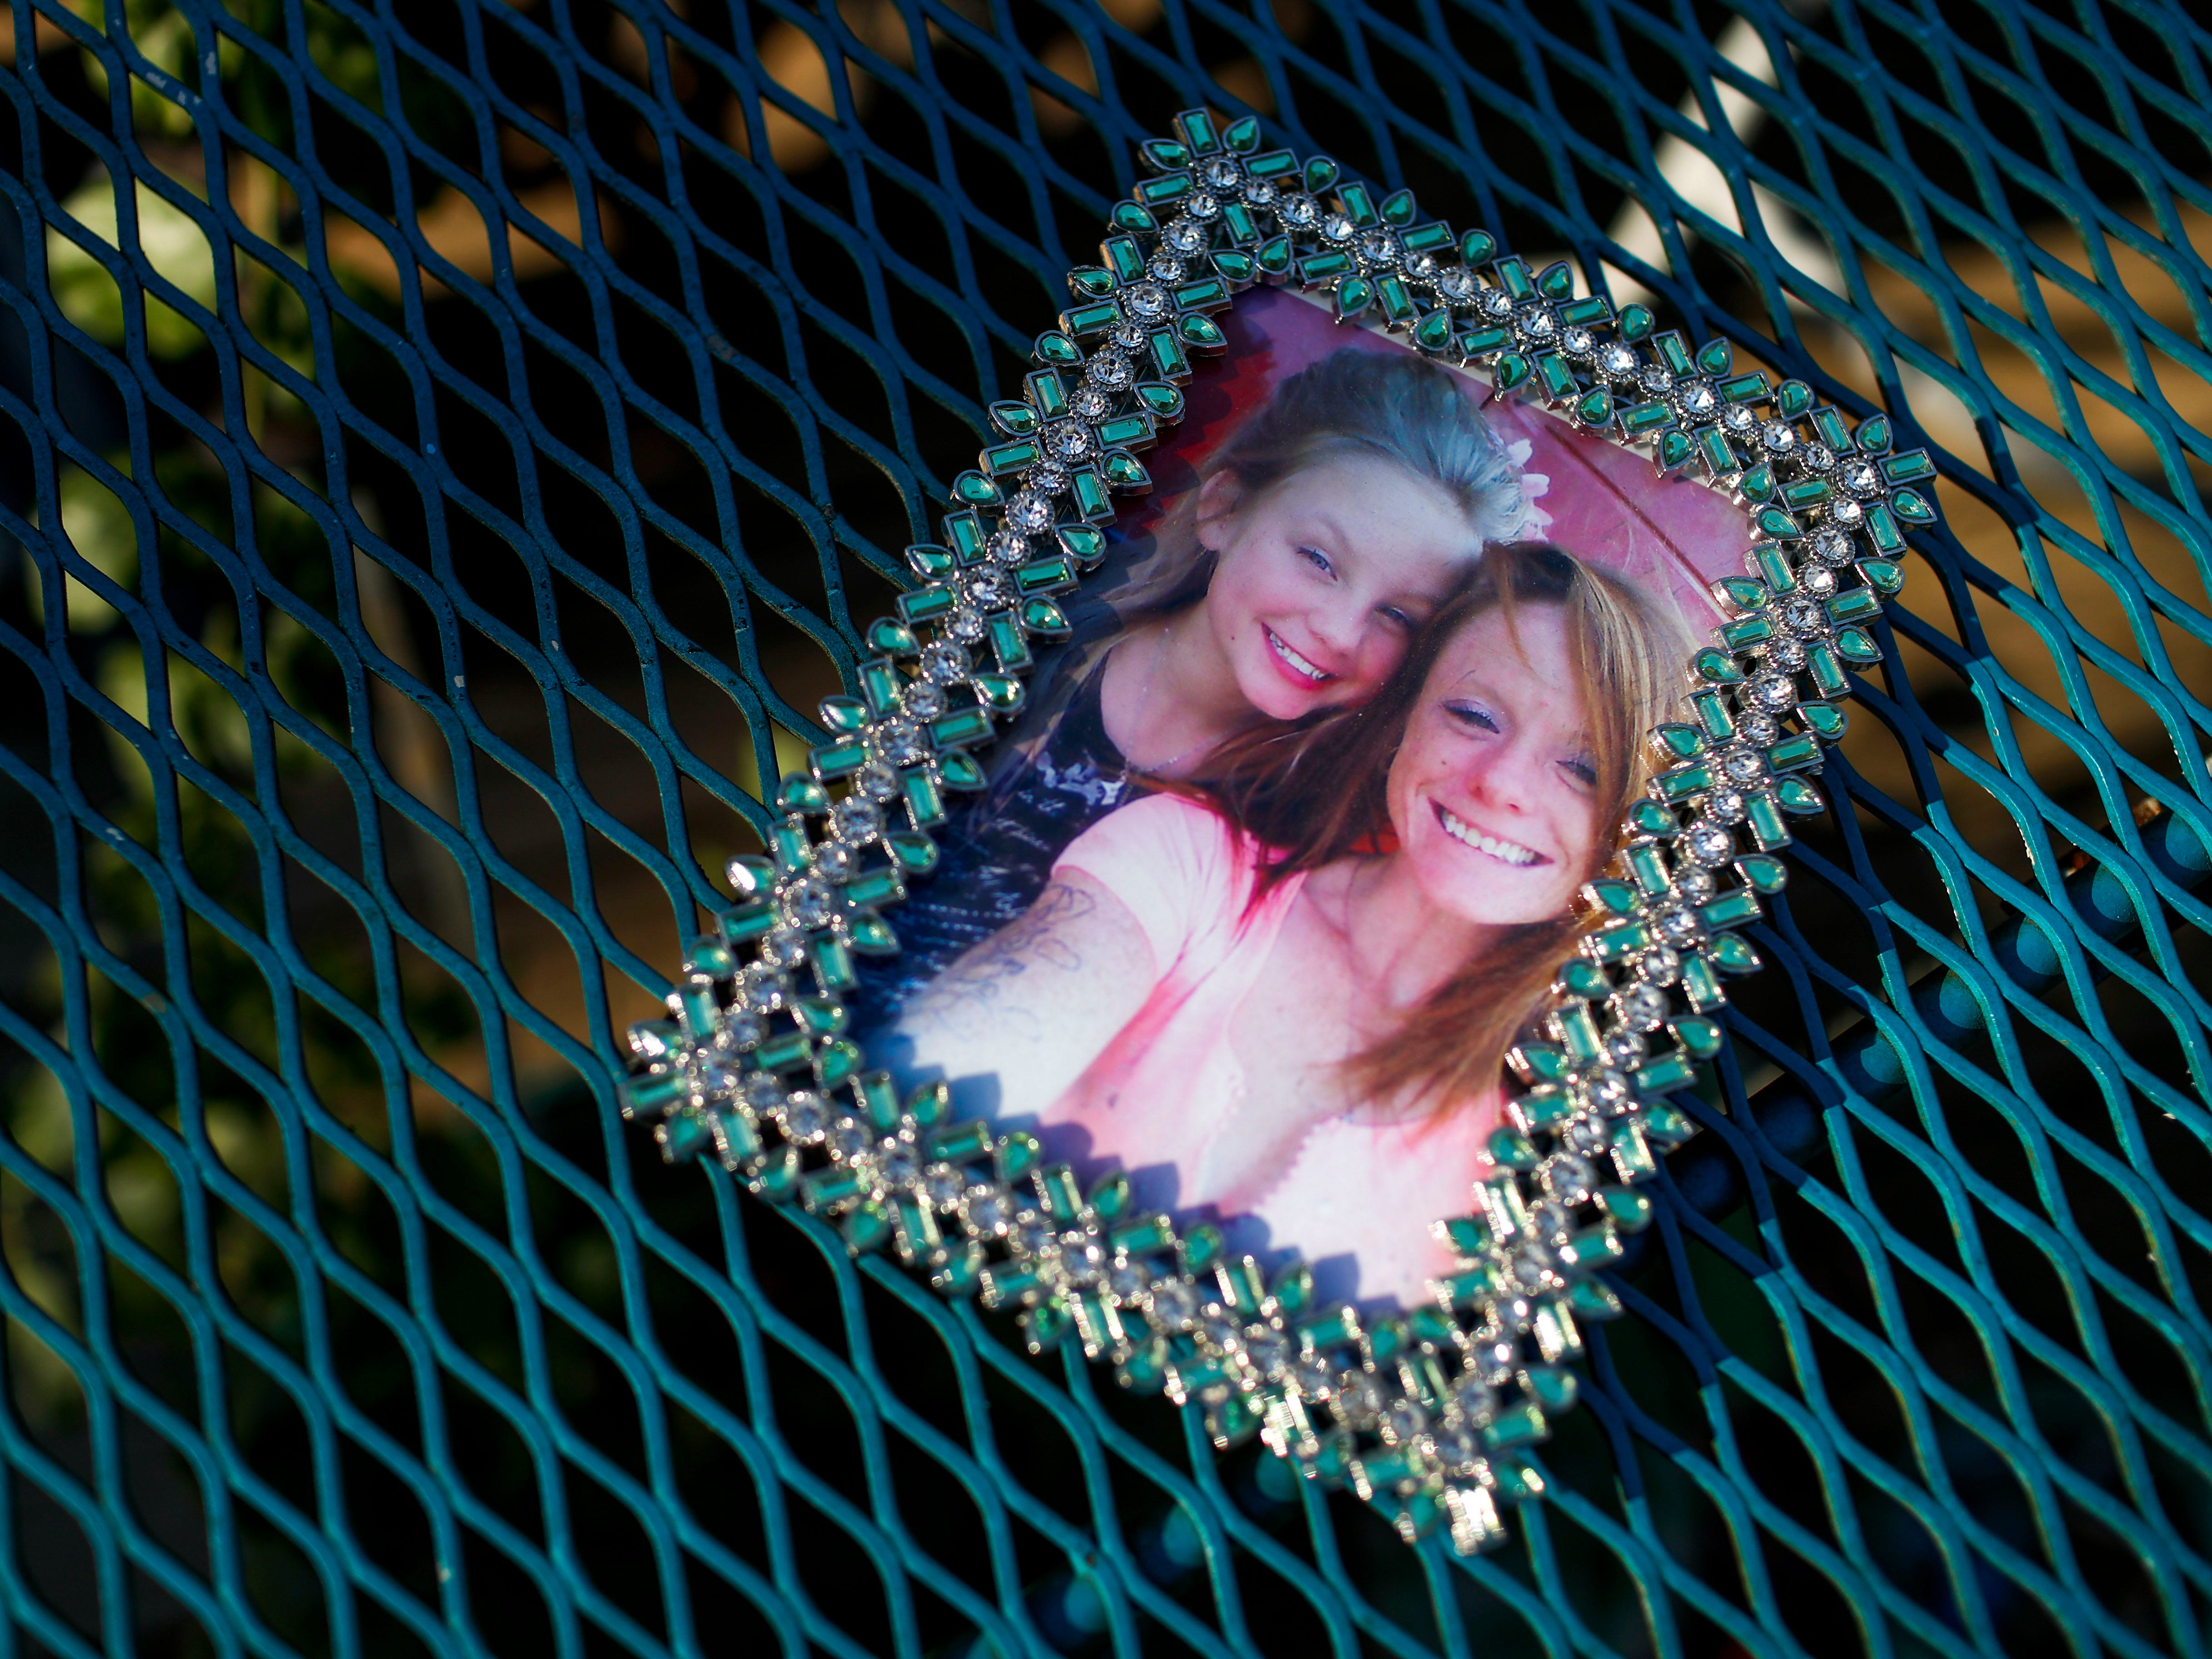 Photos of Natalie Lyle, daughter of Lacie Sloan, who as a middle schooler took her own life, at the Lindsay residence in Clarksville, Tenn., on Friday, March 22, 2019.